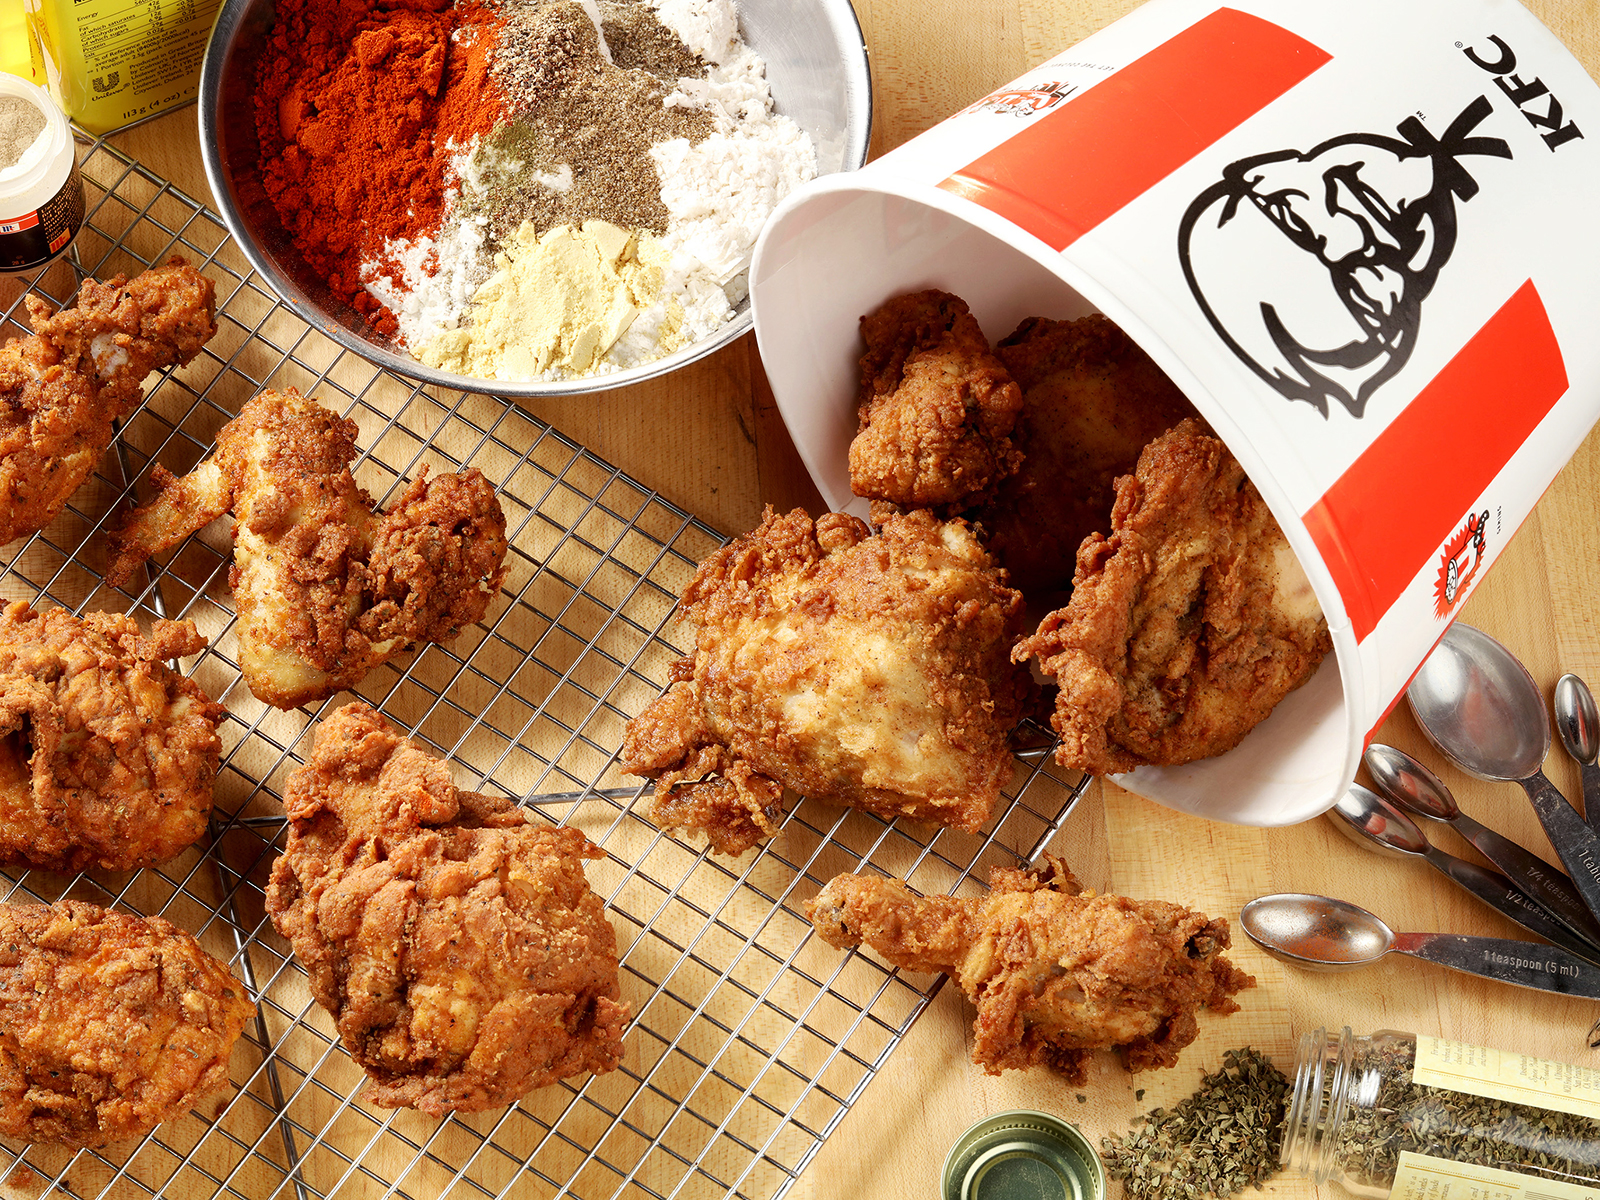 kfc low odor in japan